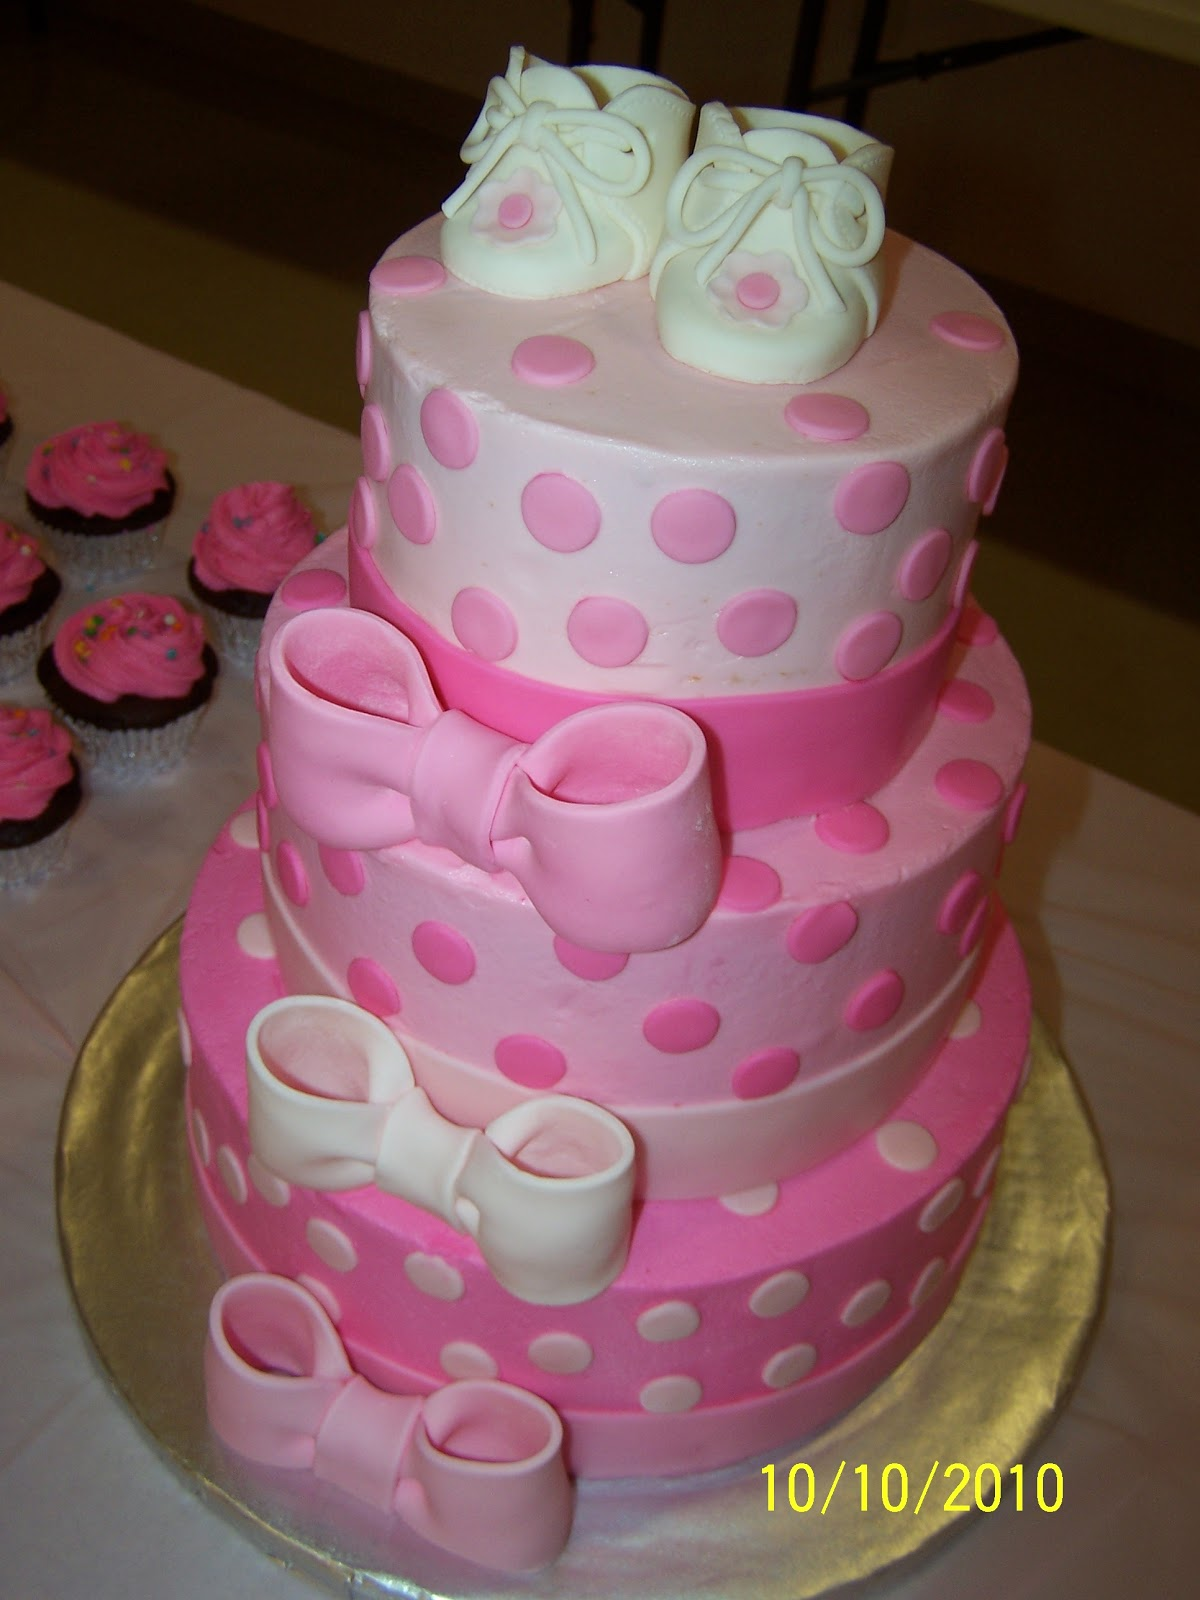 Cakes by Kristen H Pink bows and dots Baby Shower Cake